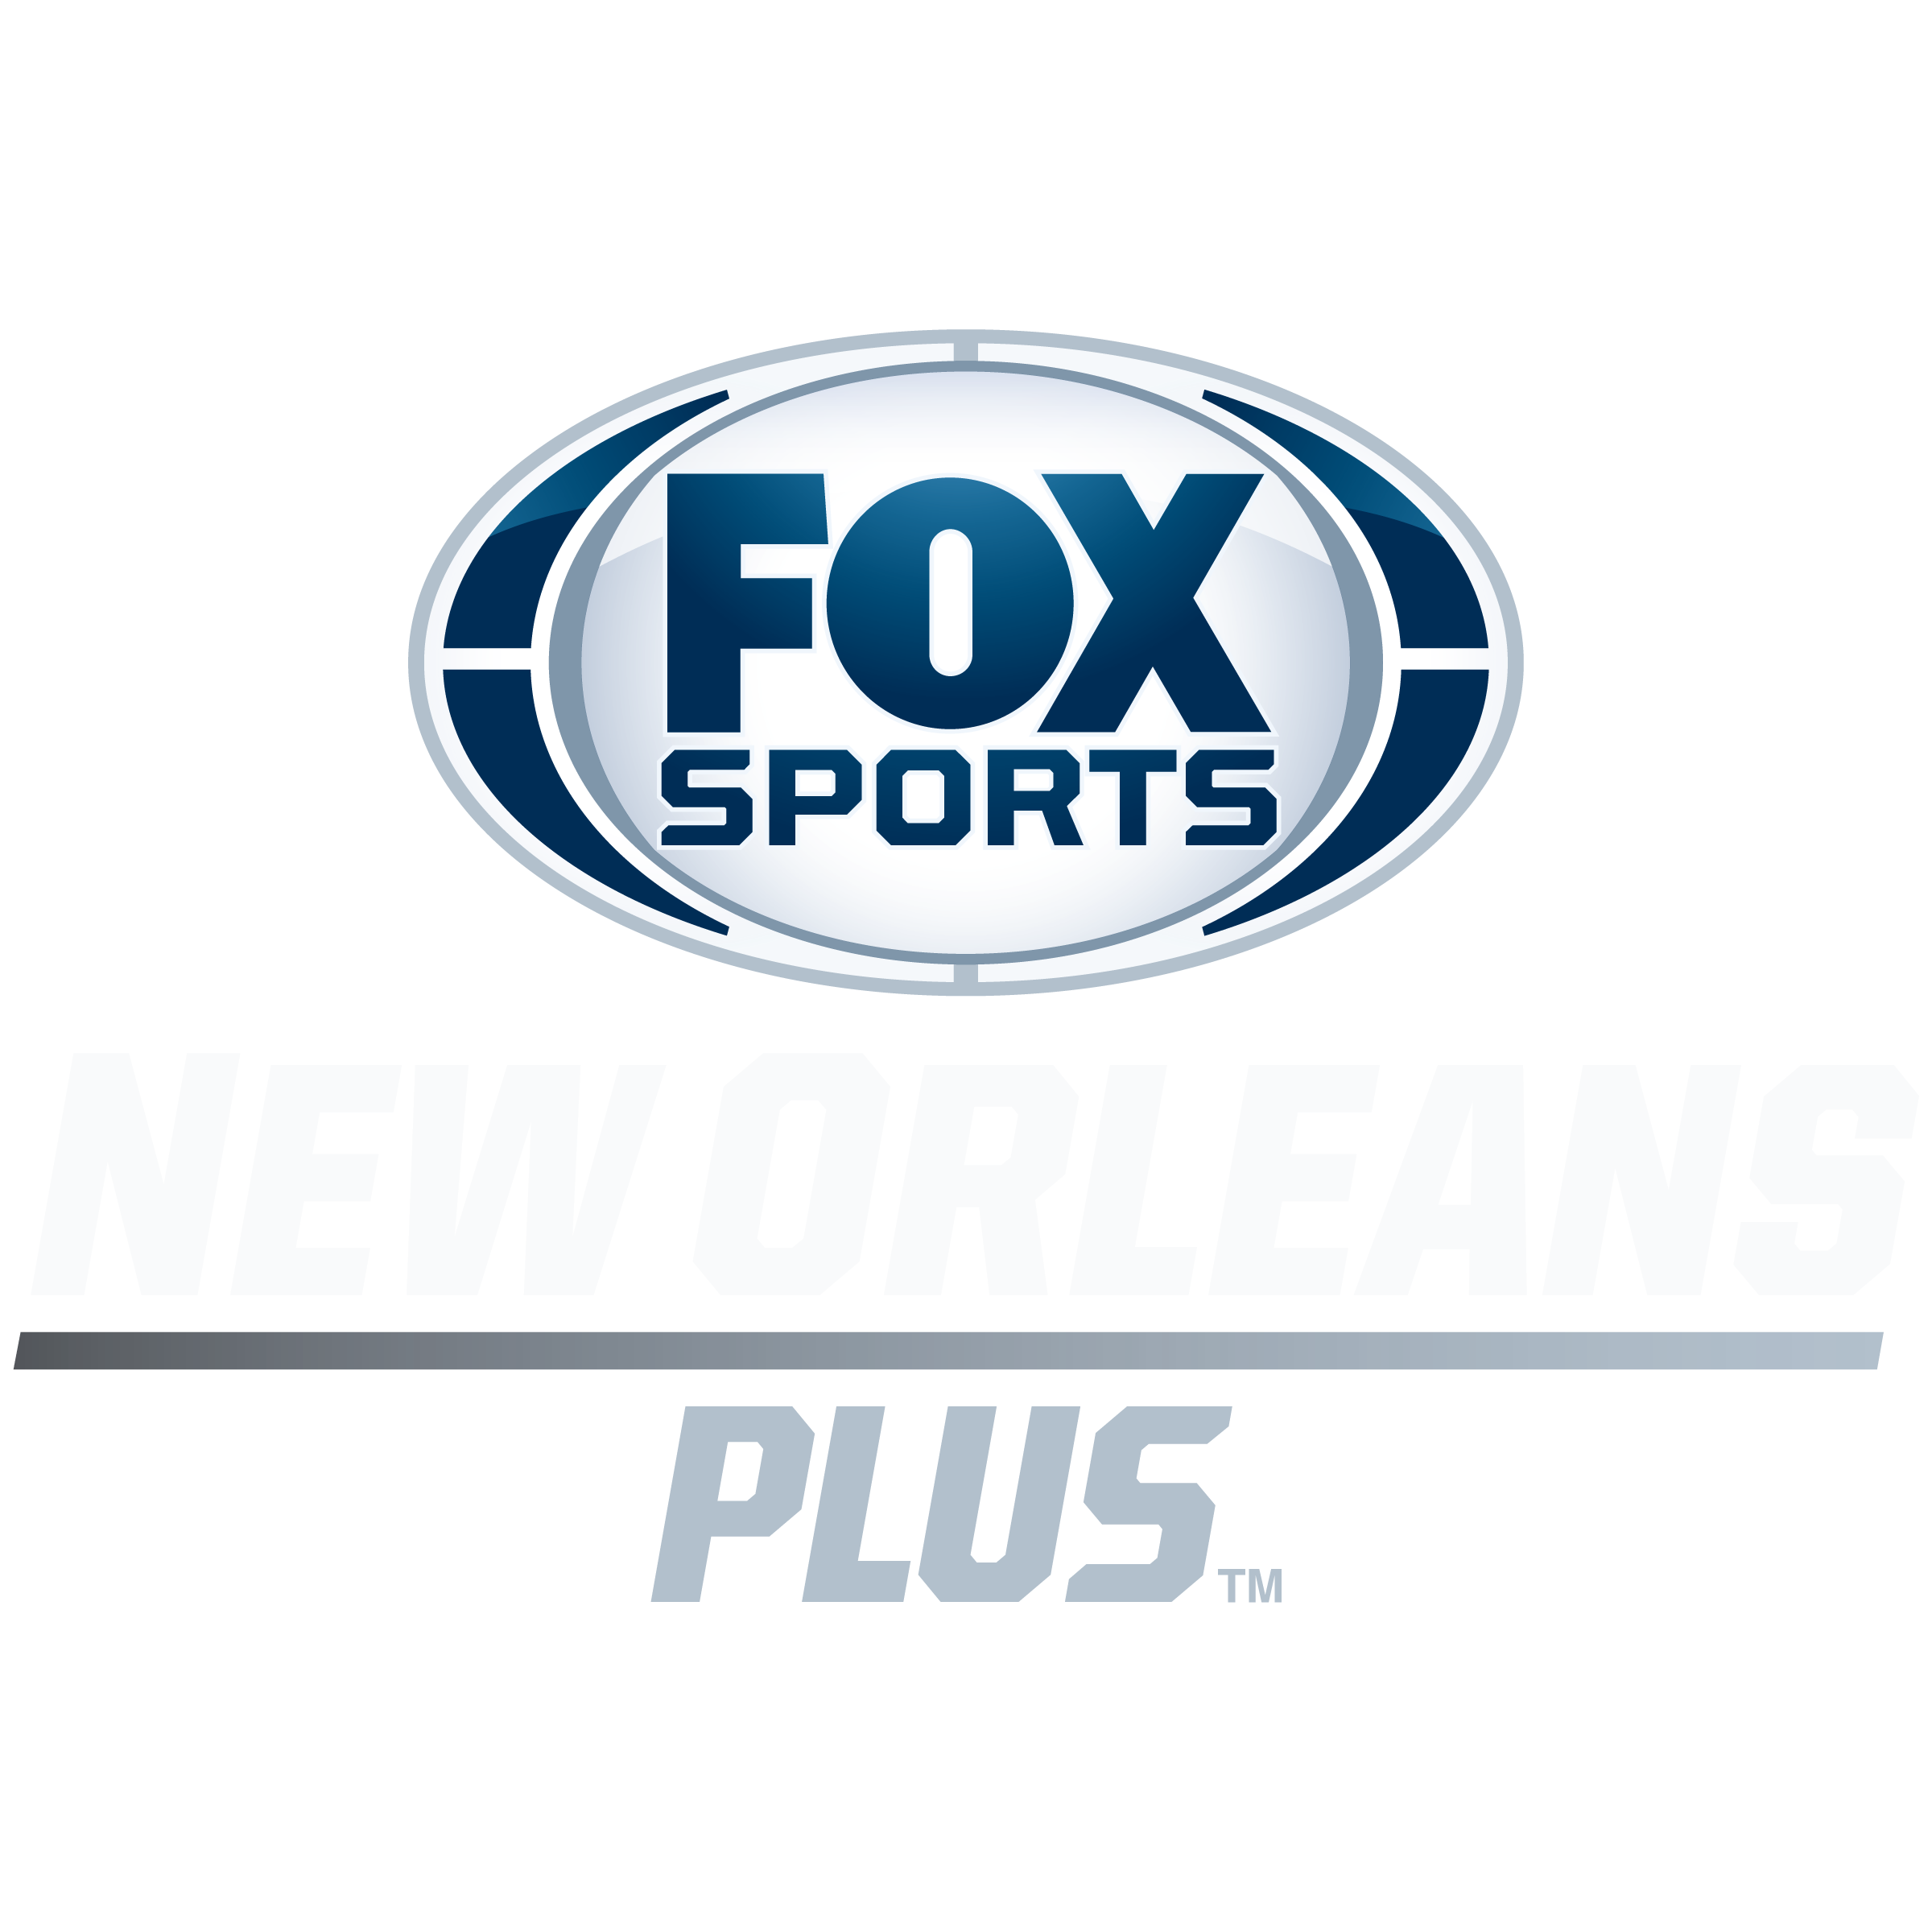 Fox sports 2 png. New orleans plus lake